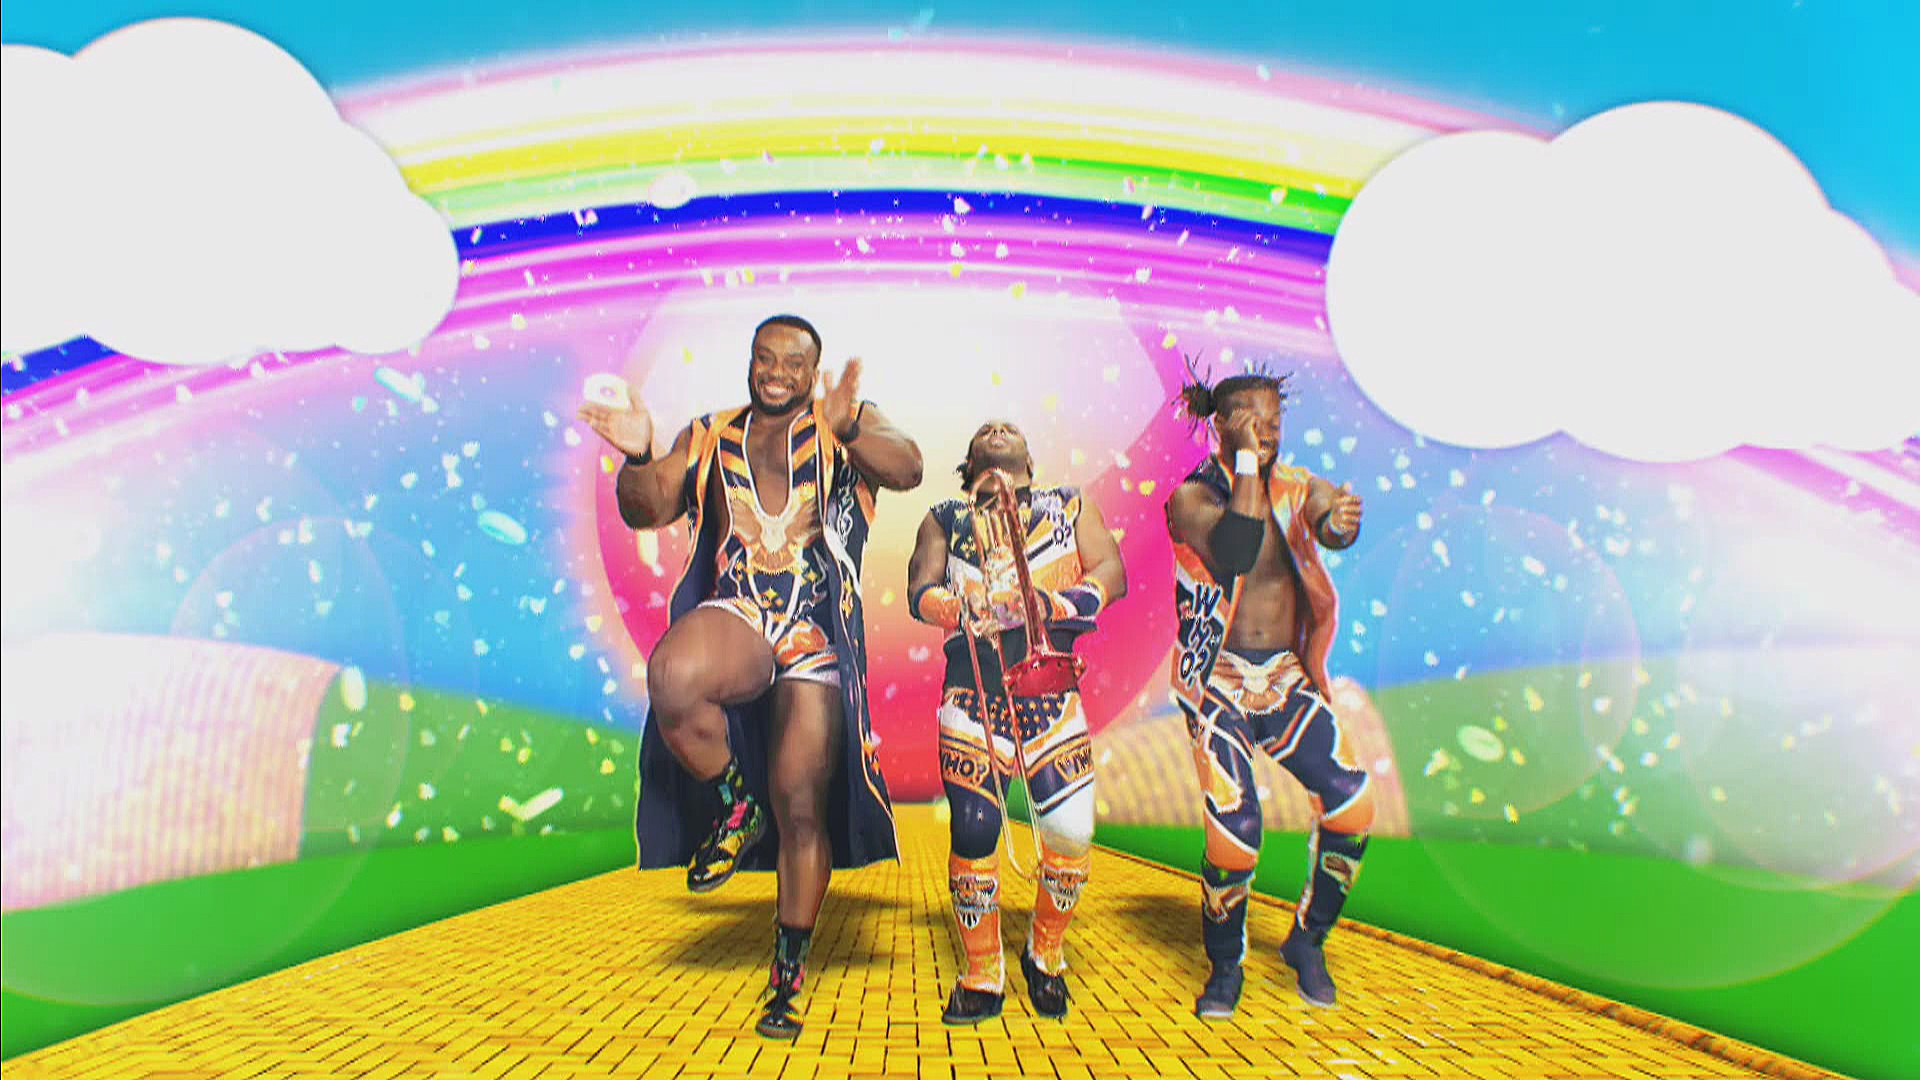 The New Day is coming soon to SmackDown: SmackDown LIVE, April 25, 2017    WWE